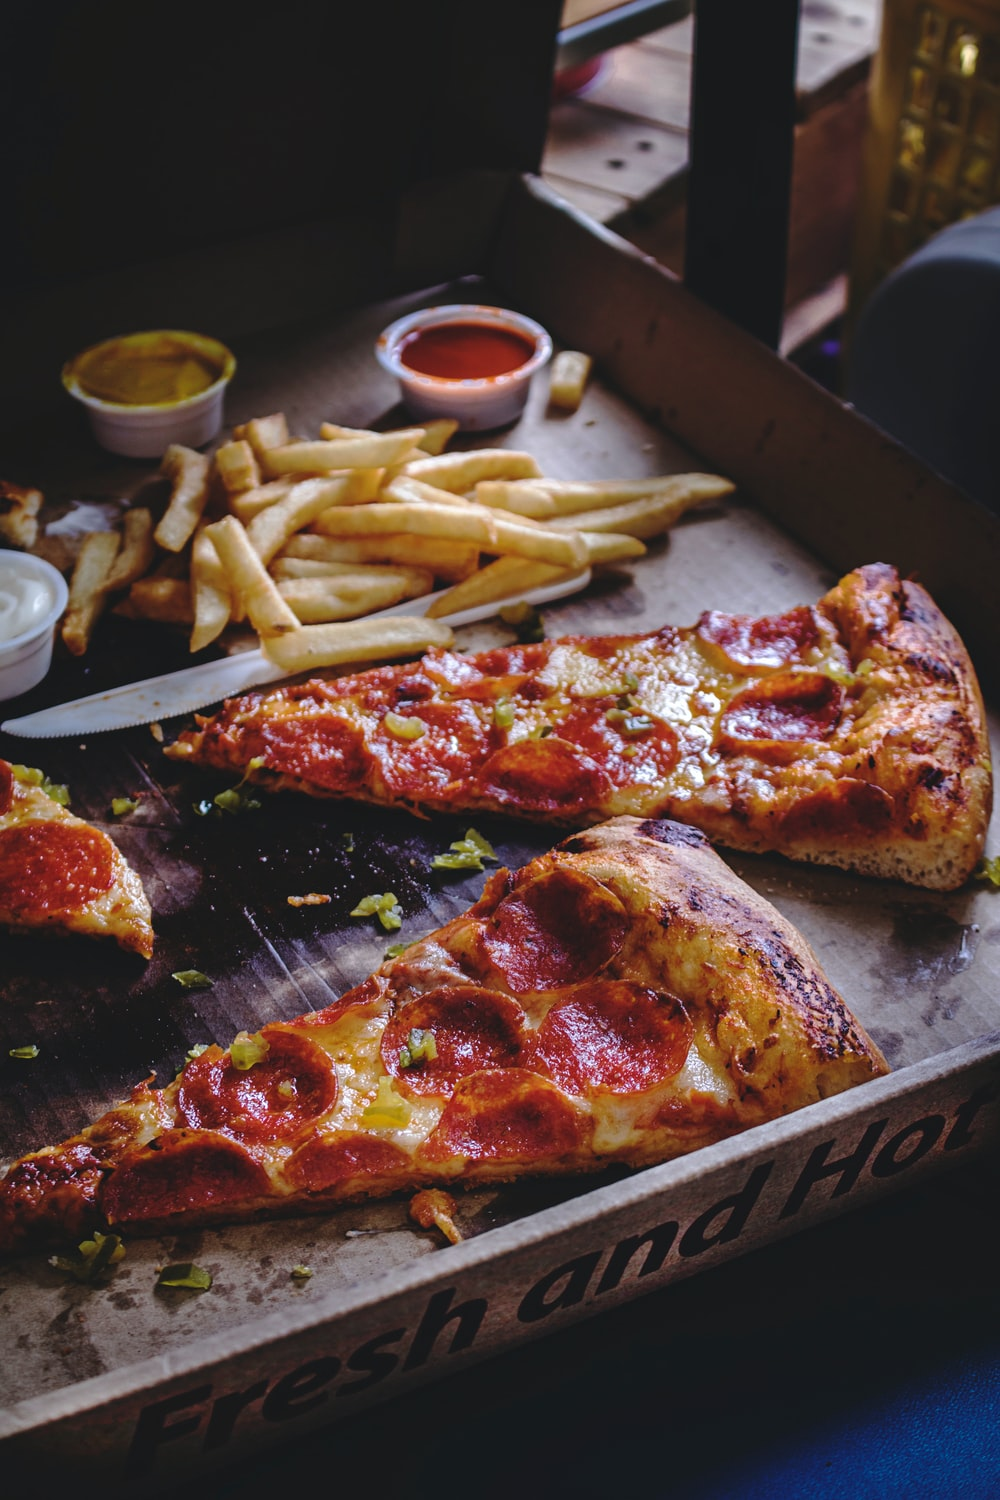 baked pepperoni pizza with French fries